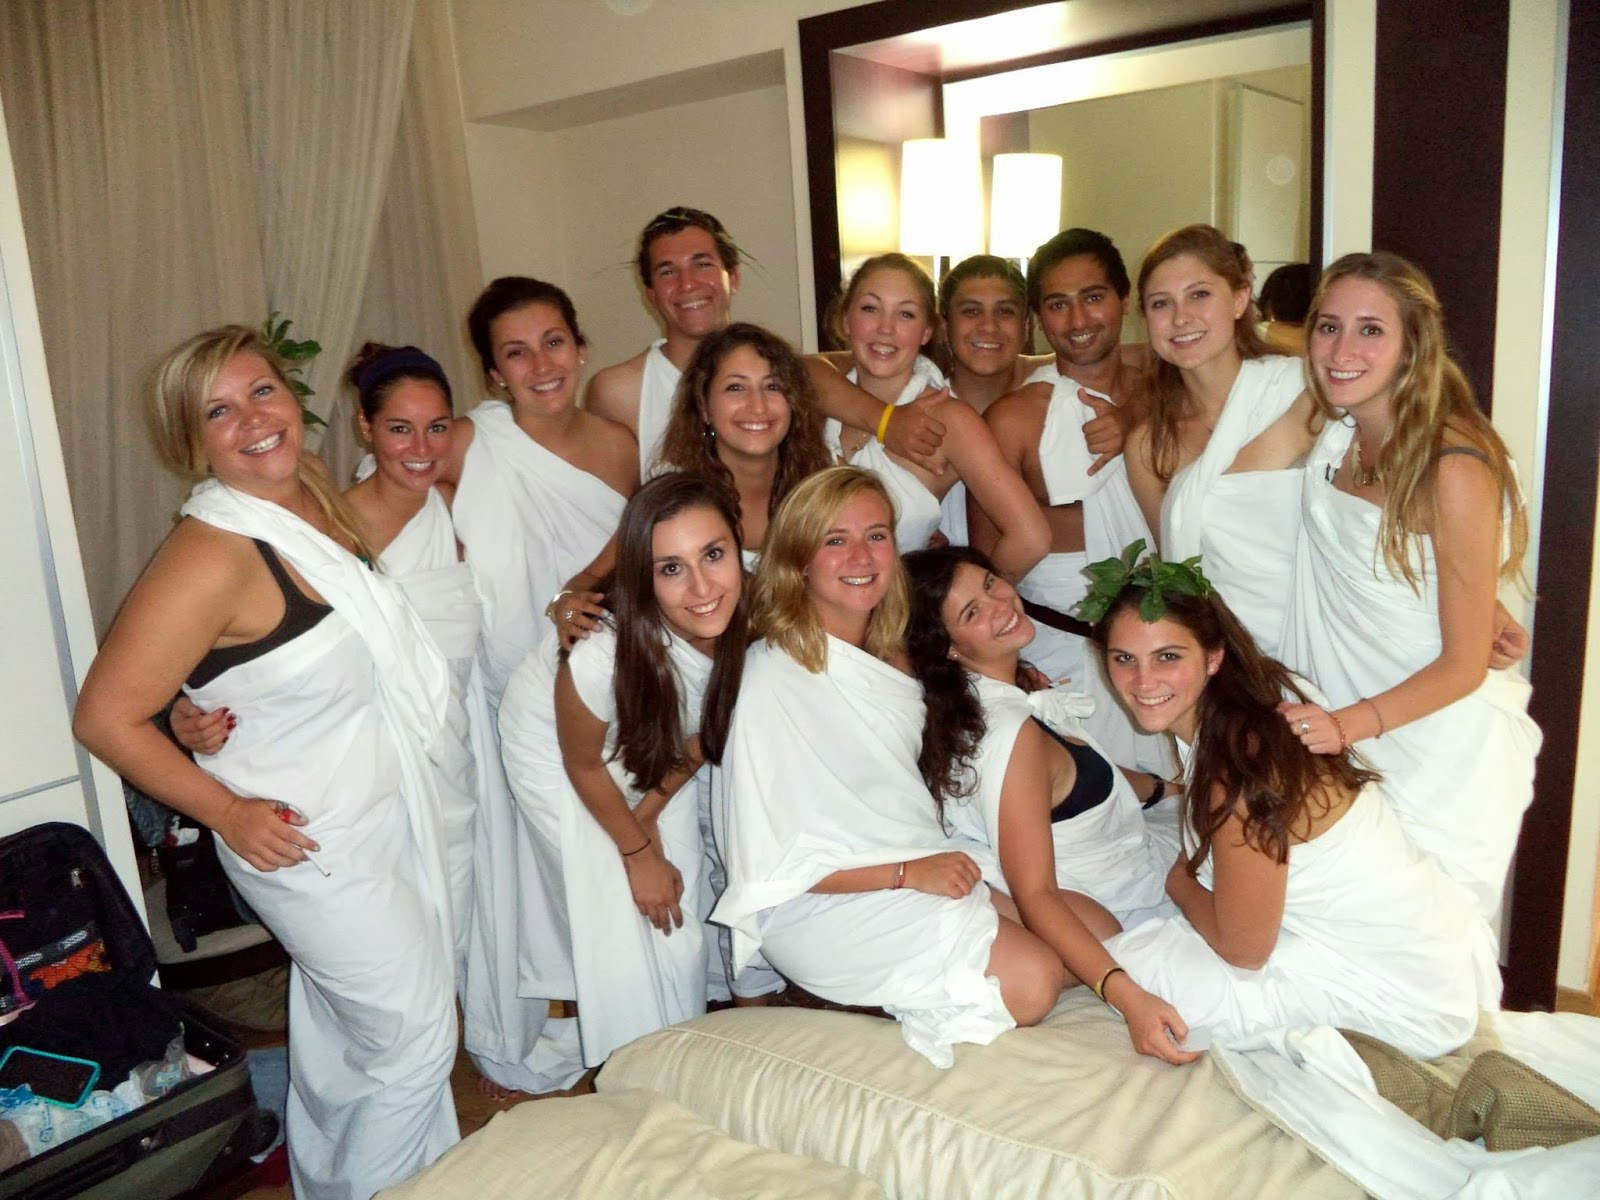 George A. David and Marina Spiropoulos Fellows Award: Toga party ...